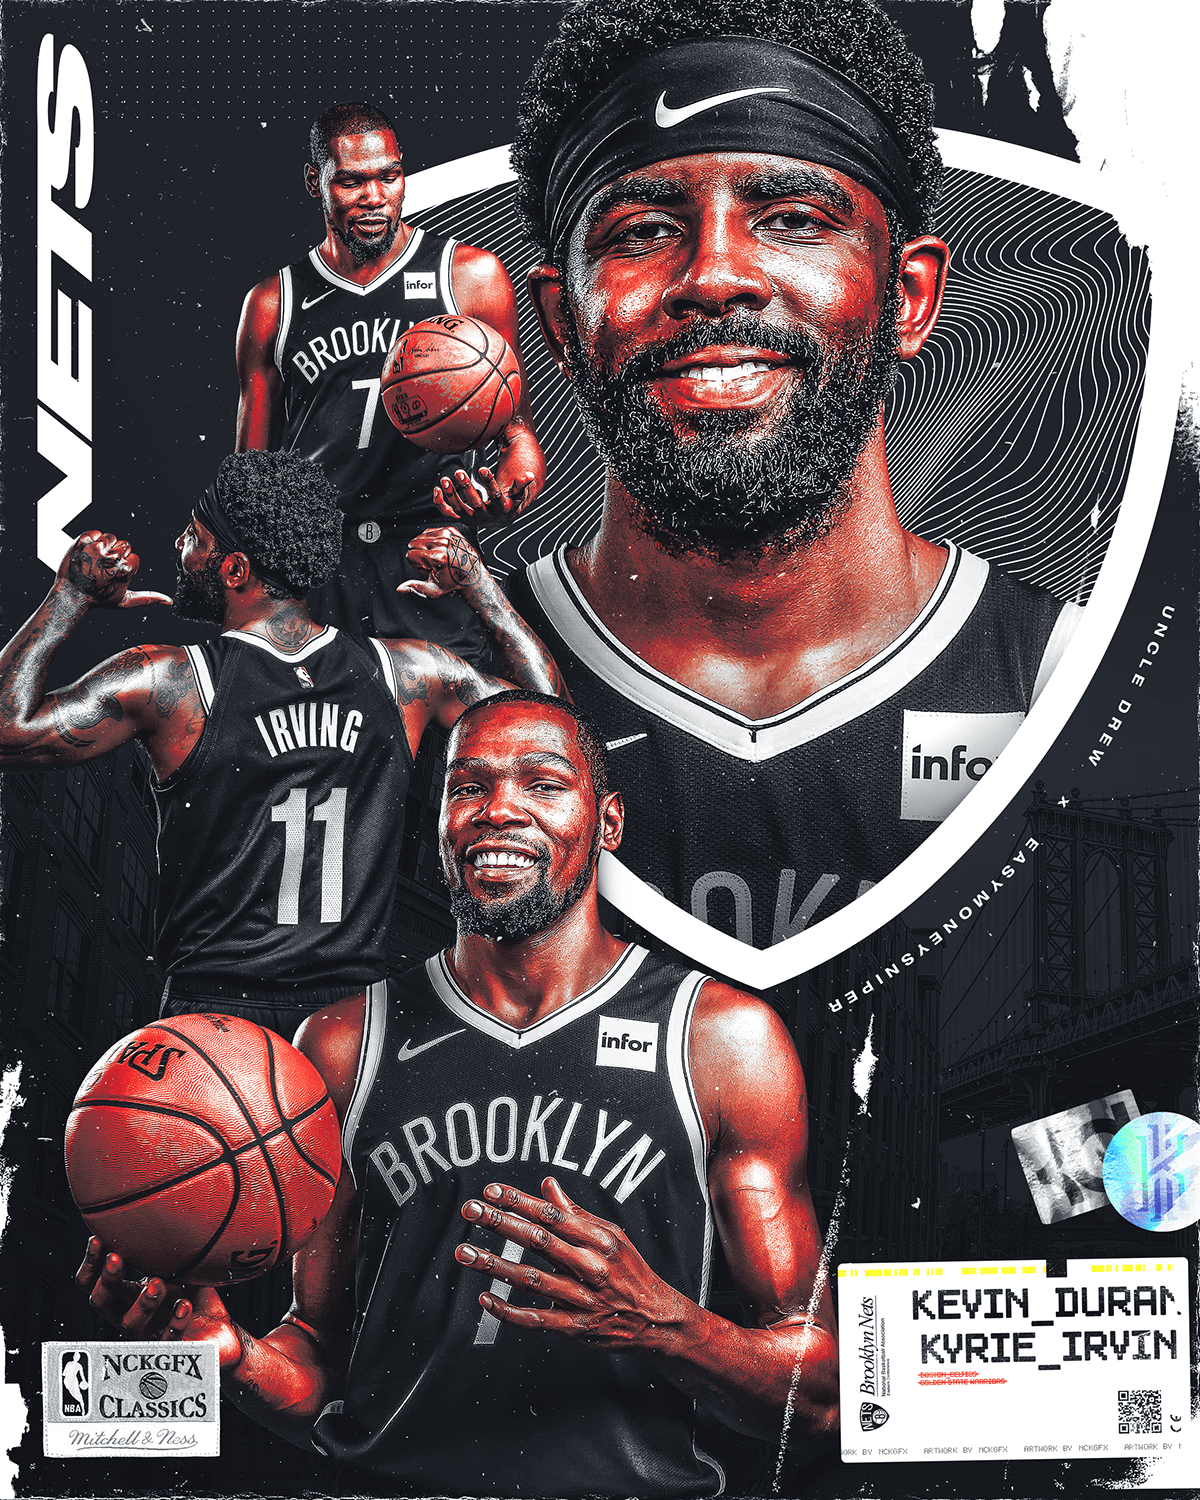 Kd And Kyrie Wallpaper : kyrie, wallpaper, Kevin, Durant, Kyrie, Irving, Arley, Brooklyn, Nets,, Wallpapers